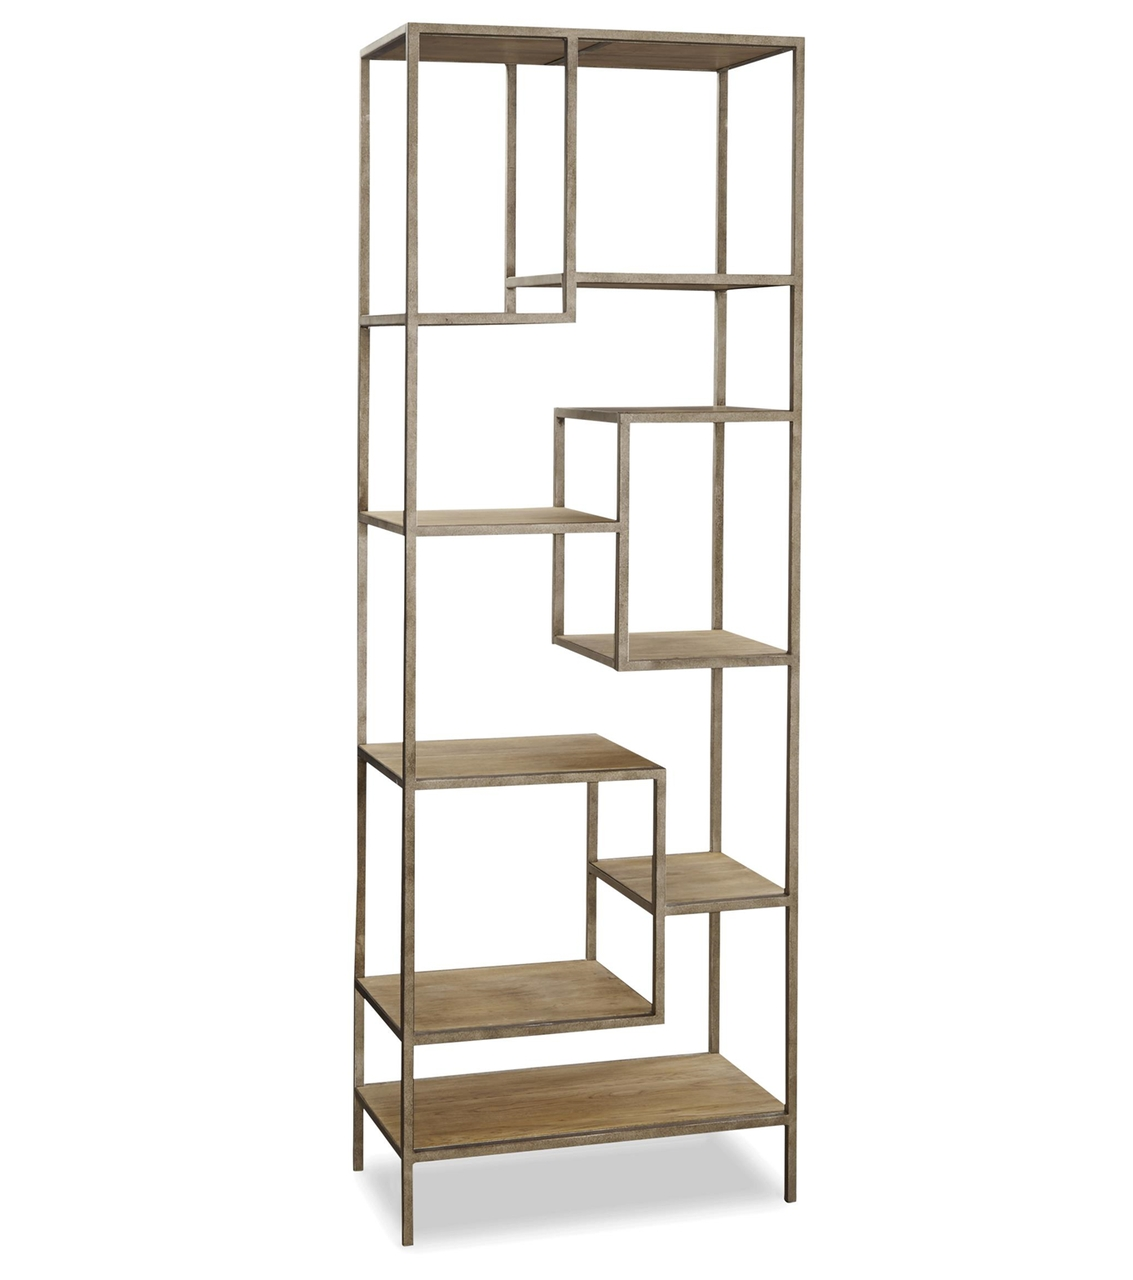 French Modern Industrial Wood + Metal Bookcase Etagere (View 6 of 15)